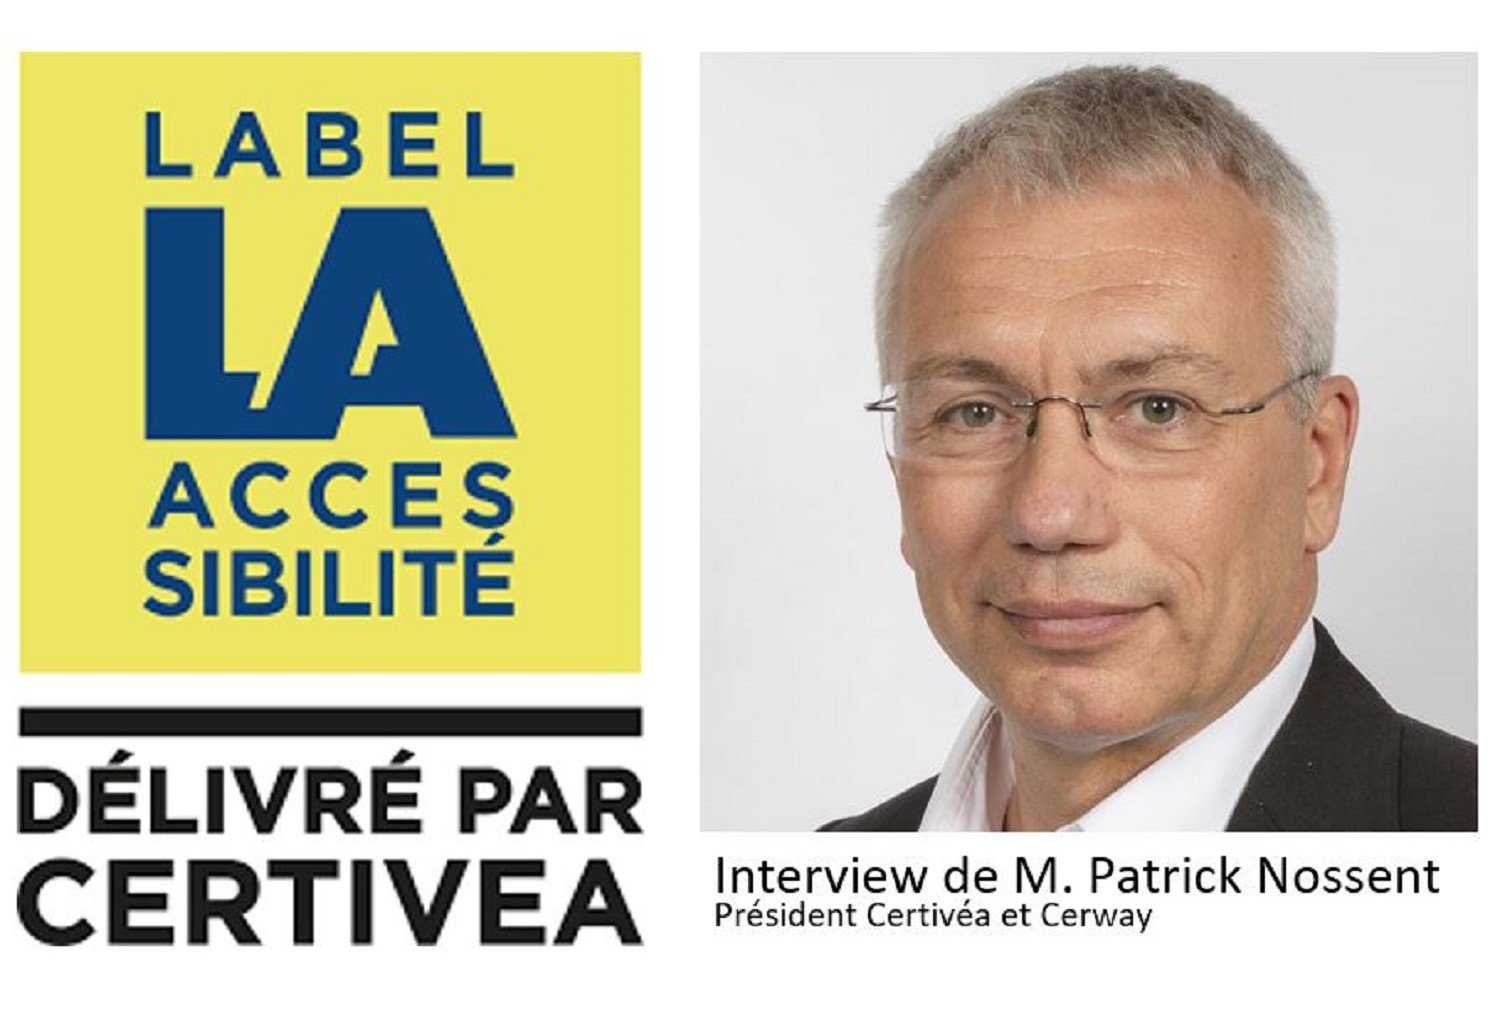 Label Accessiblité par Certivéa